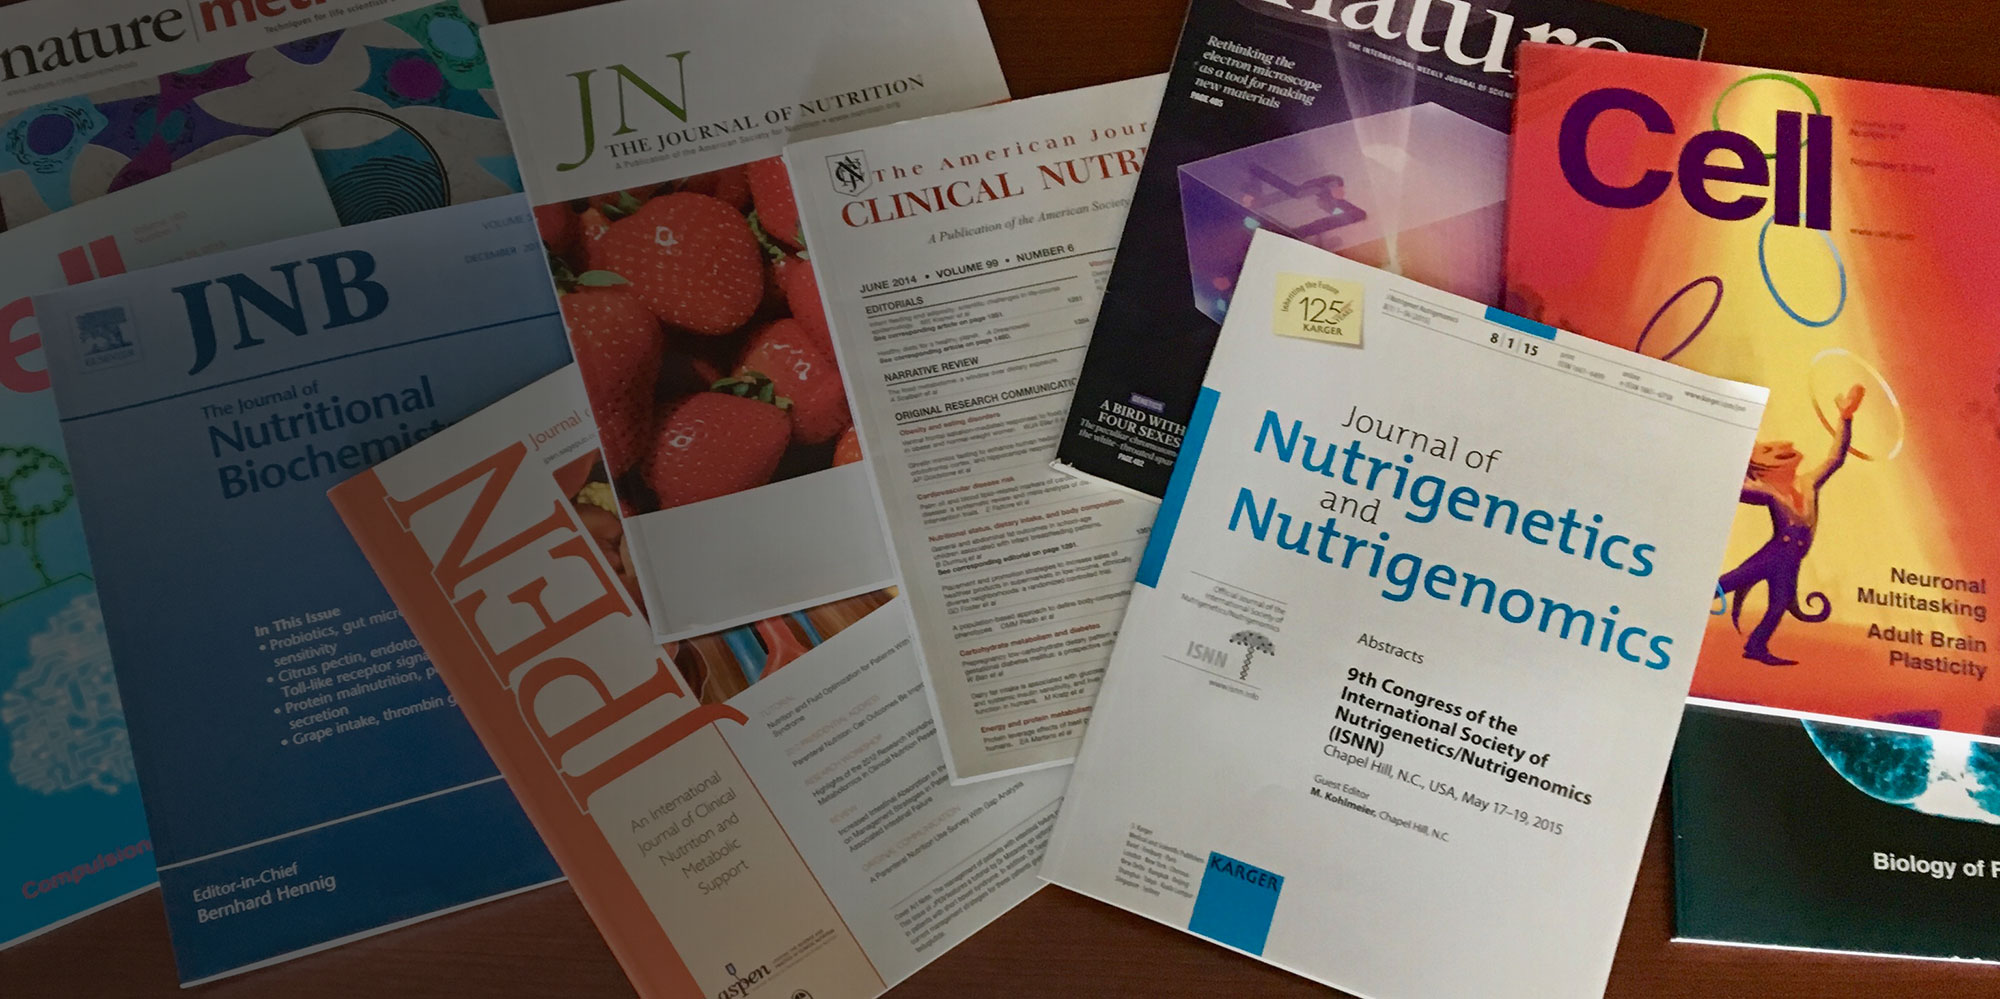 Various Nutritional Research Institute books are spread out.